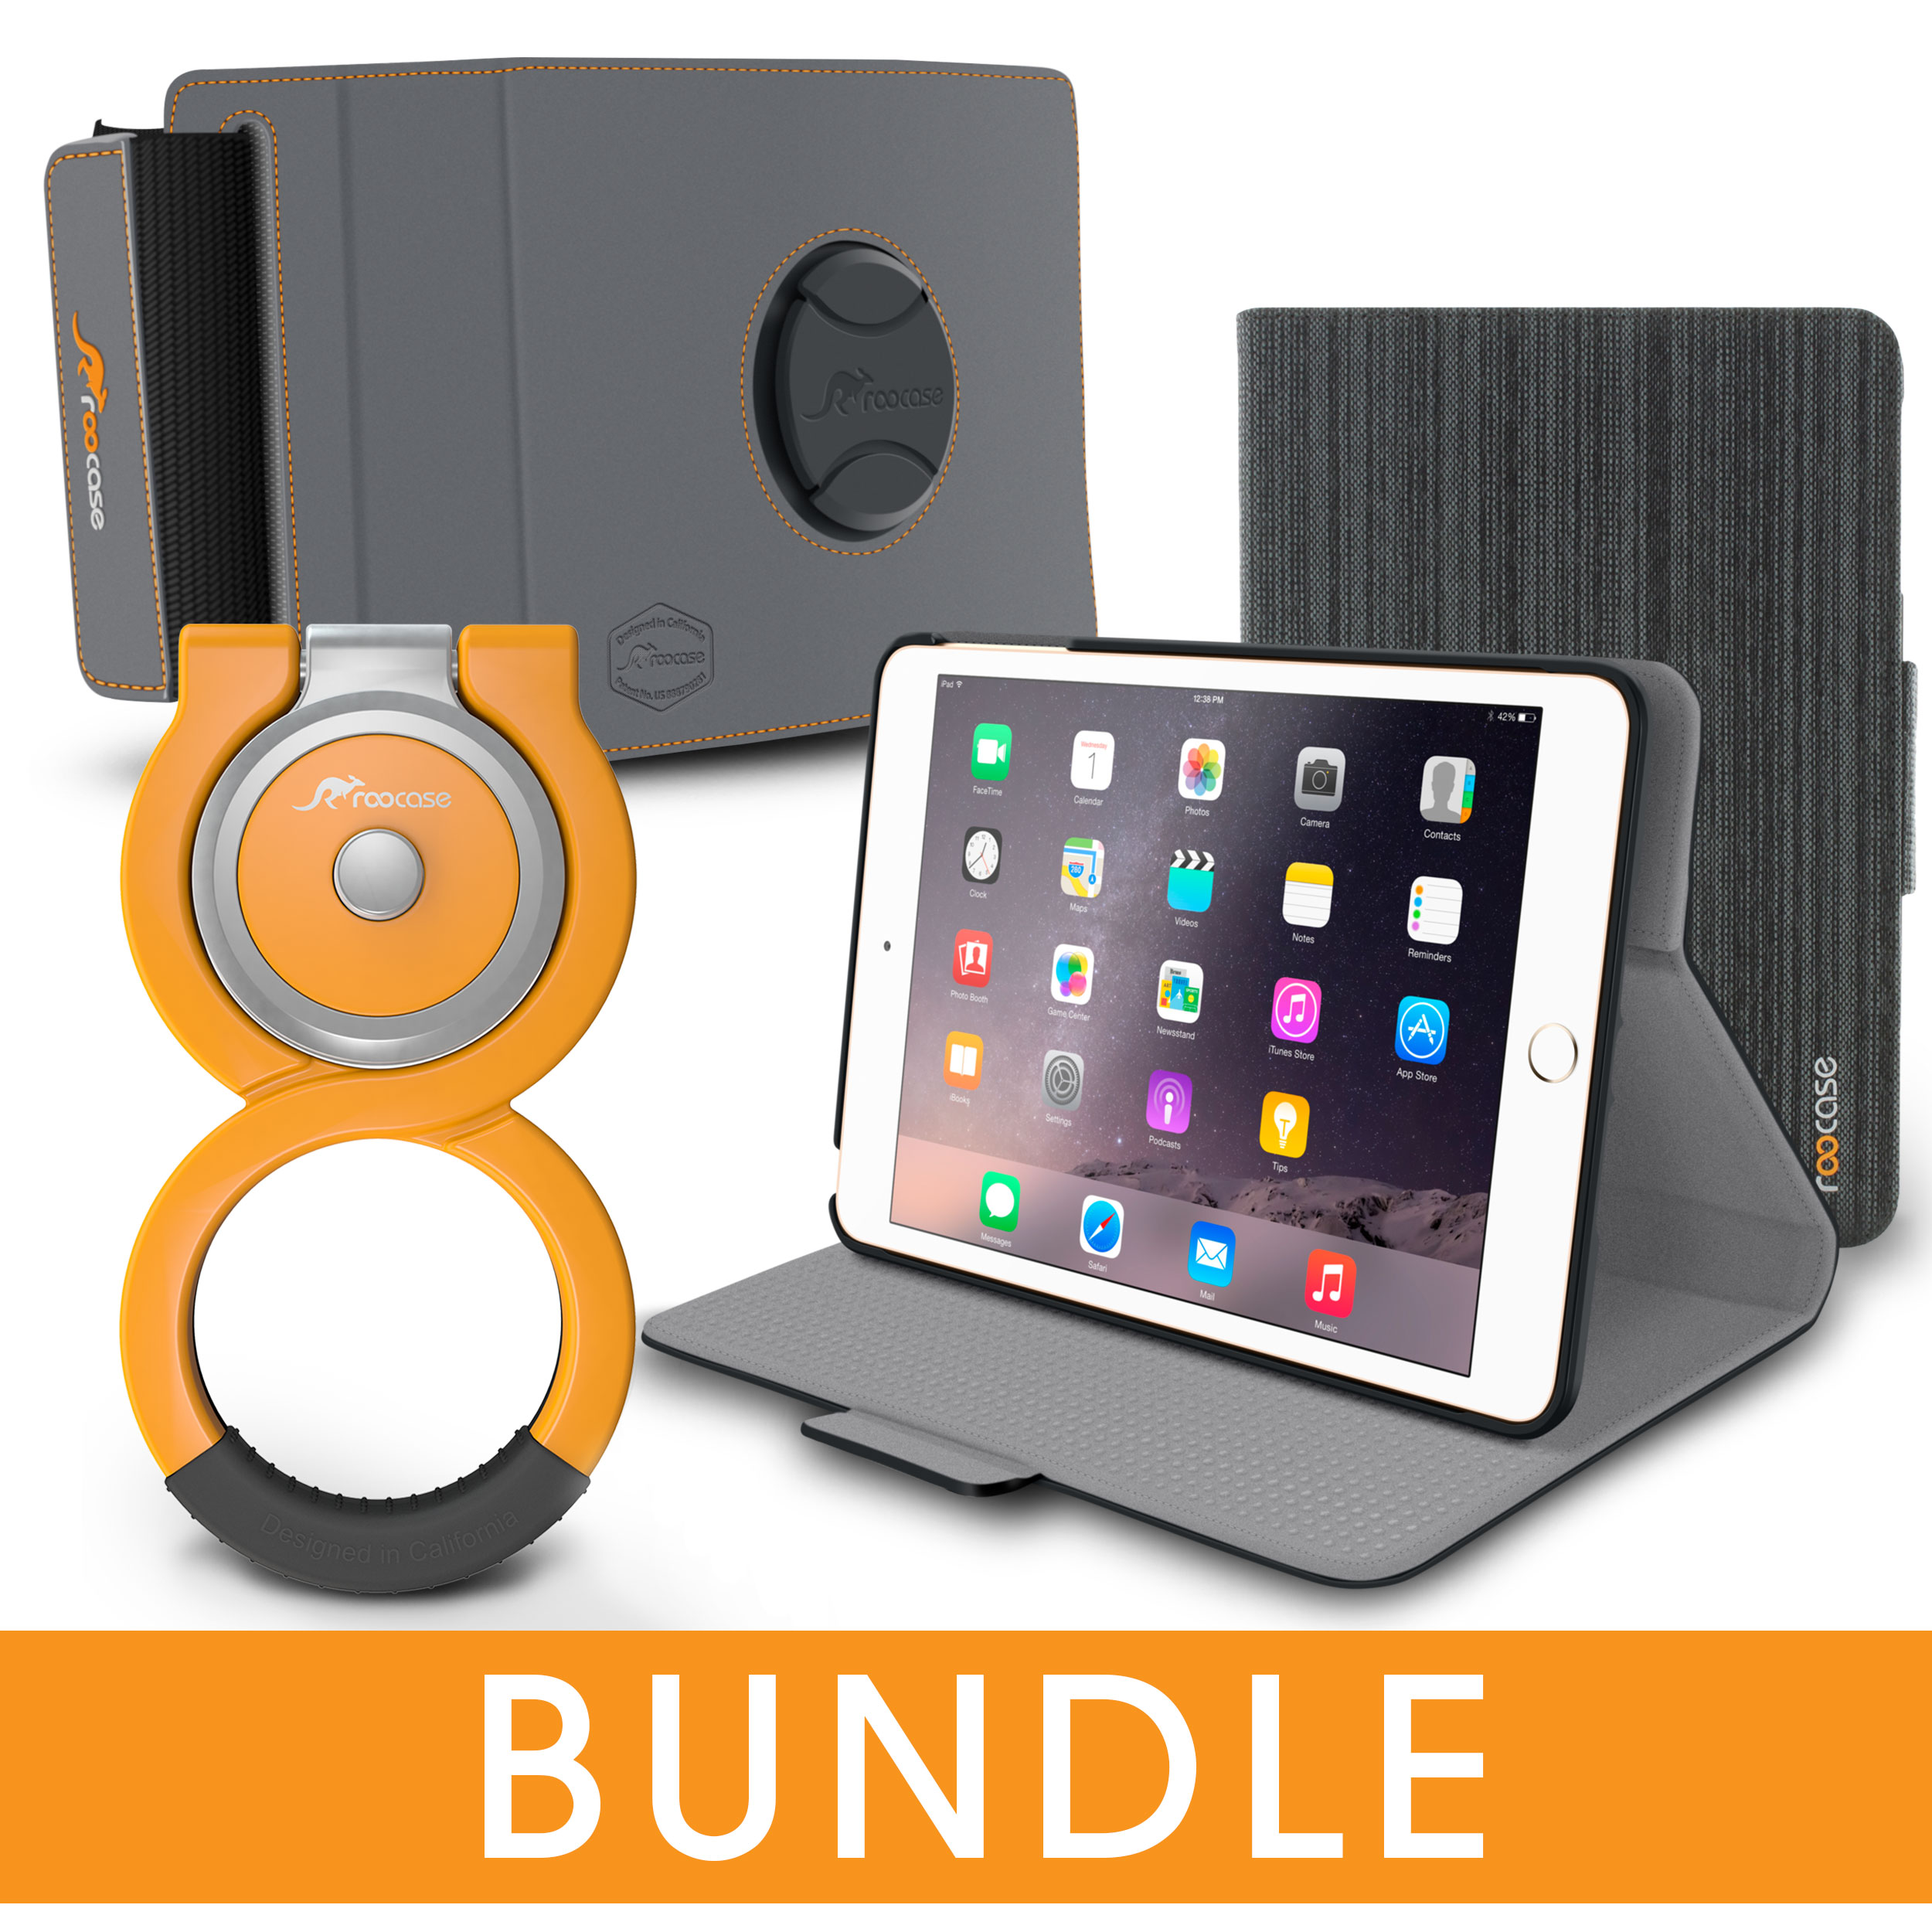 iPad Mini 3 2 1 Case, rooCASE Orb Folio 360 Rotating Leather Case with Loop Stand + Car Mount Attachment for Apple iPad Mini 3 2 1